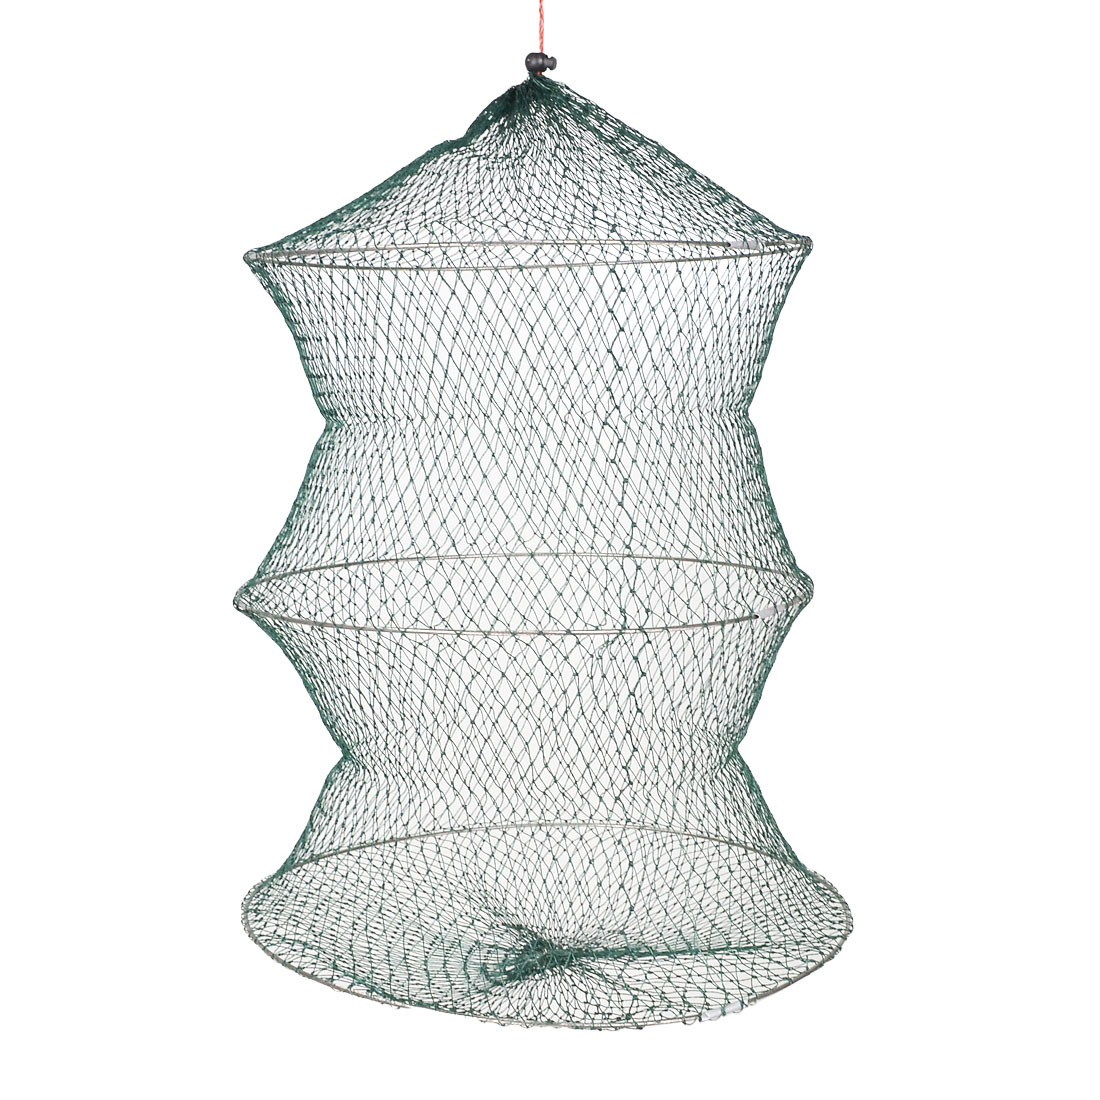 Green Mesh Fishing Netting 2-Layer Fish Lobster Shrimp Crab Net